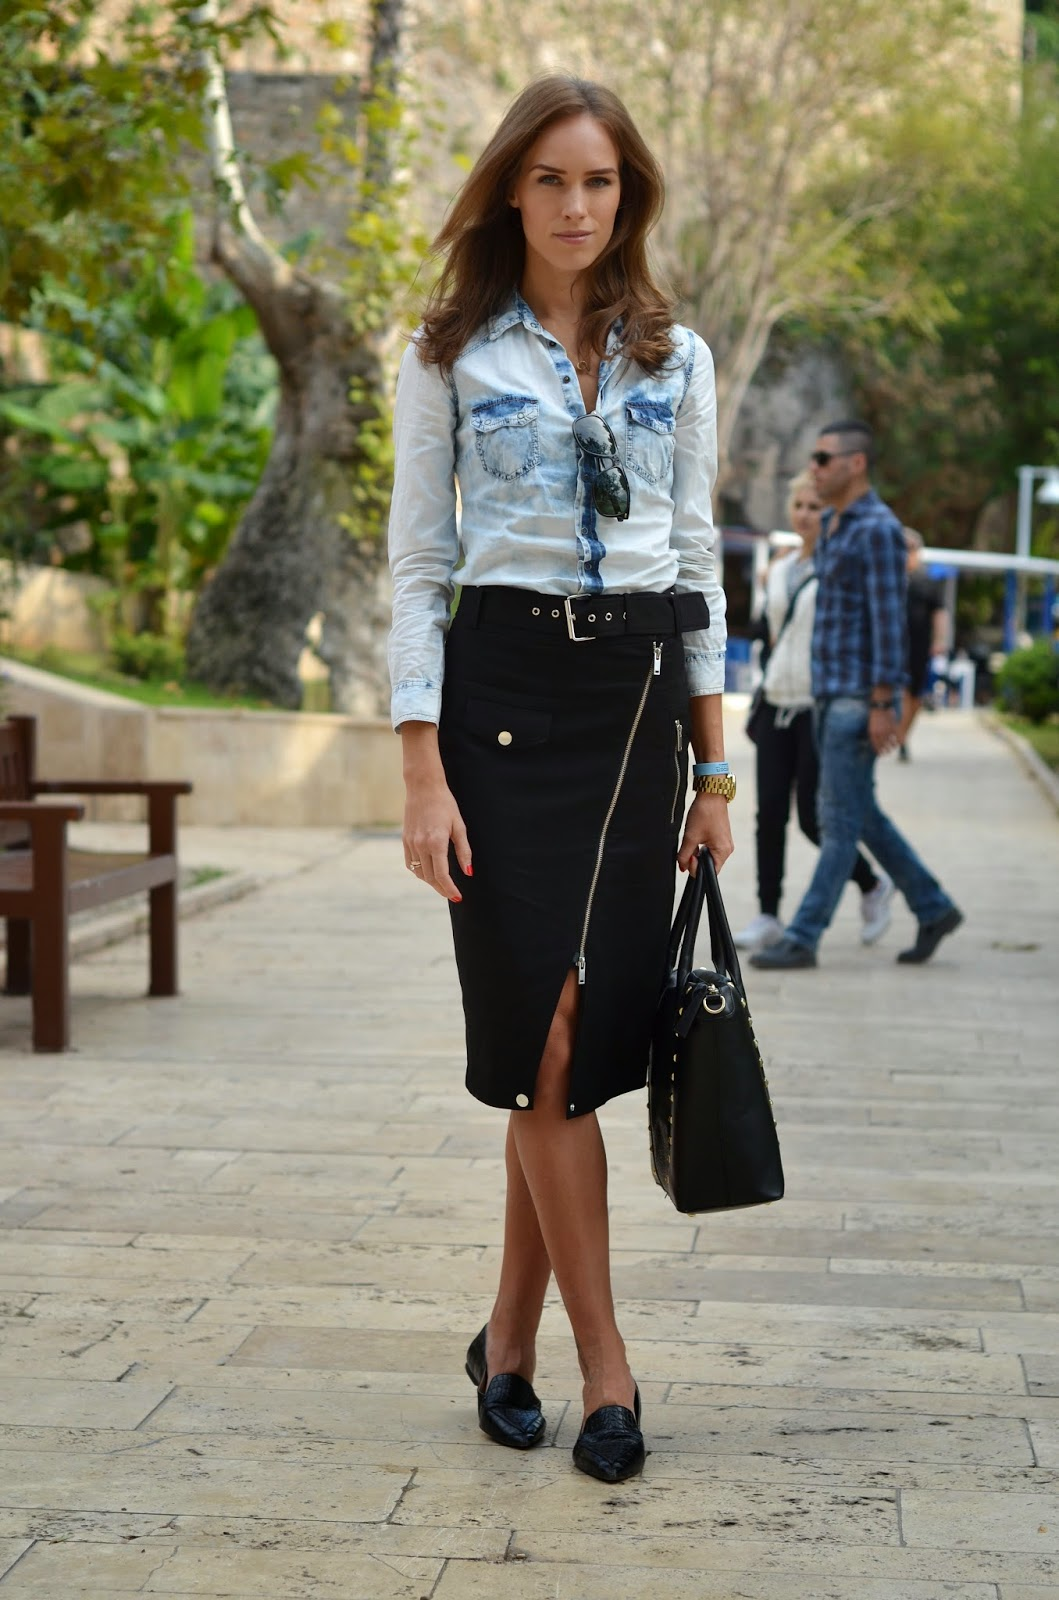 denim-shirt-gaultier-zipper-pencil-skirt-pointed-flats-bag kristjaana mere